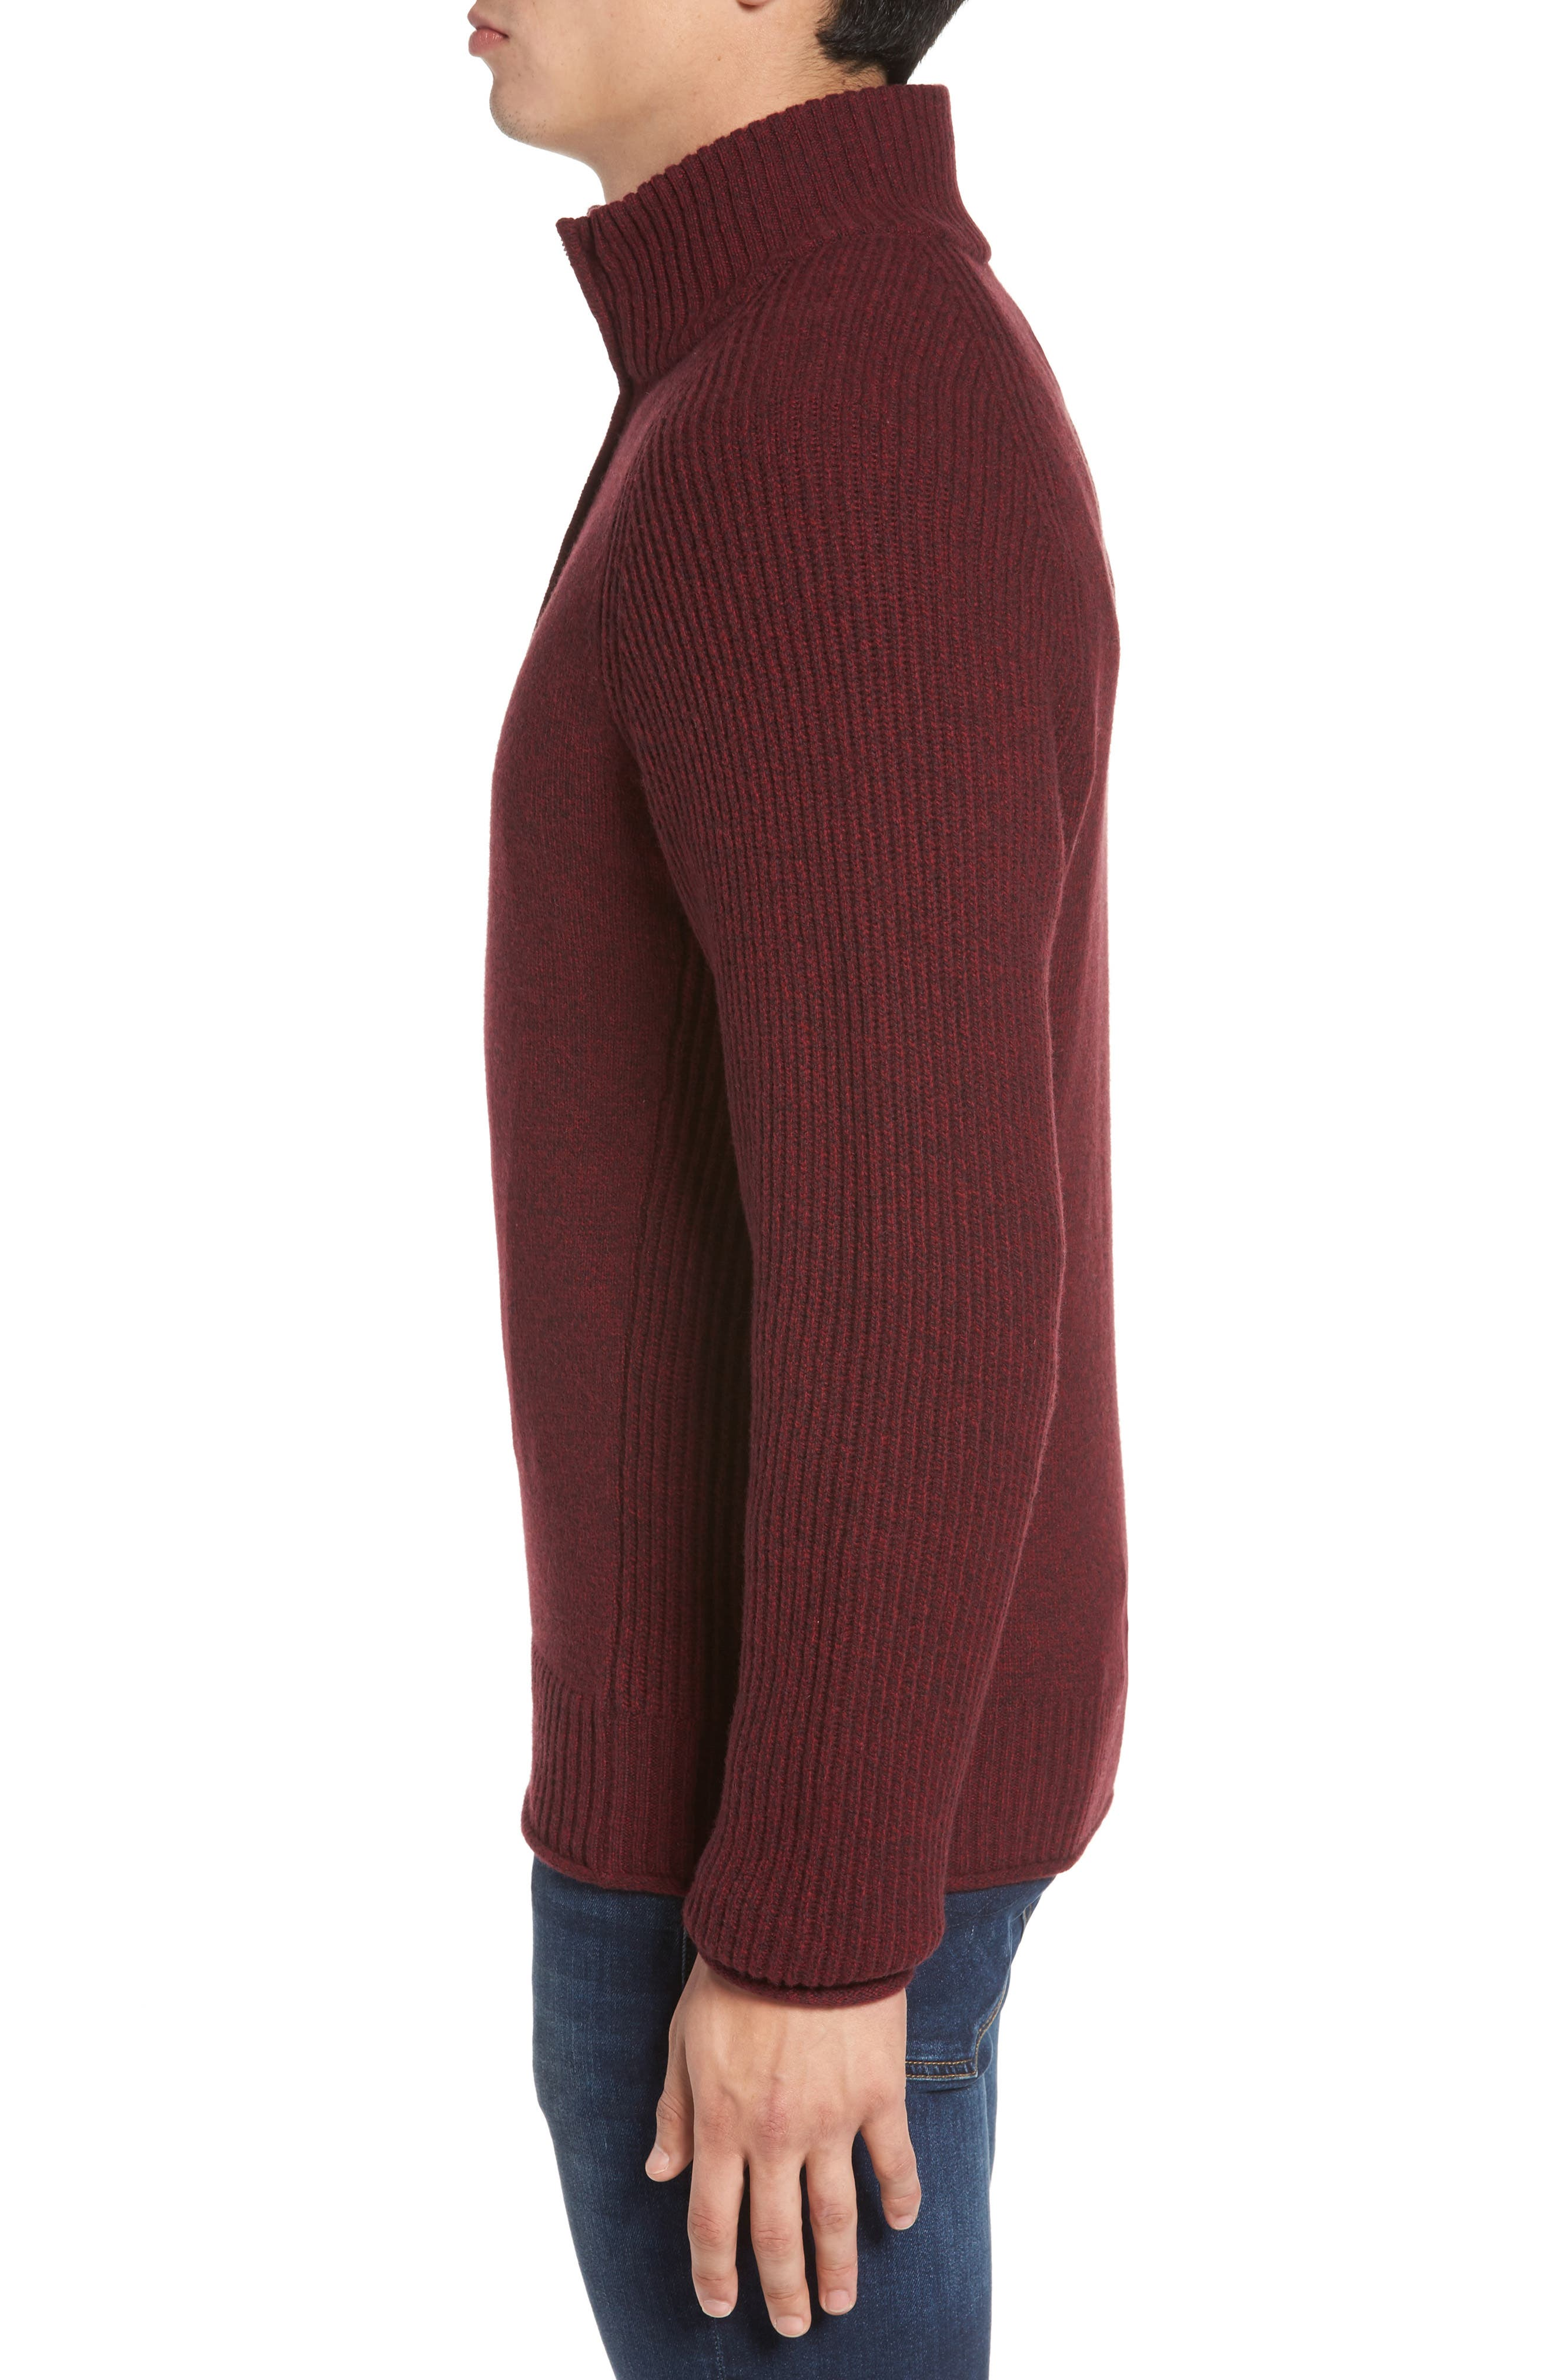 Stredwick Lambswool Sweater,                             Alternate thumbnail 13, color,